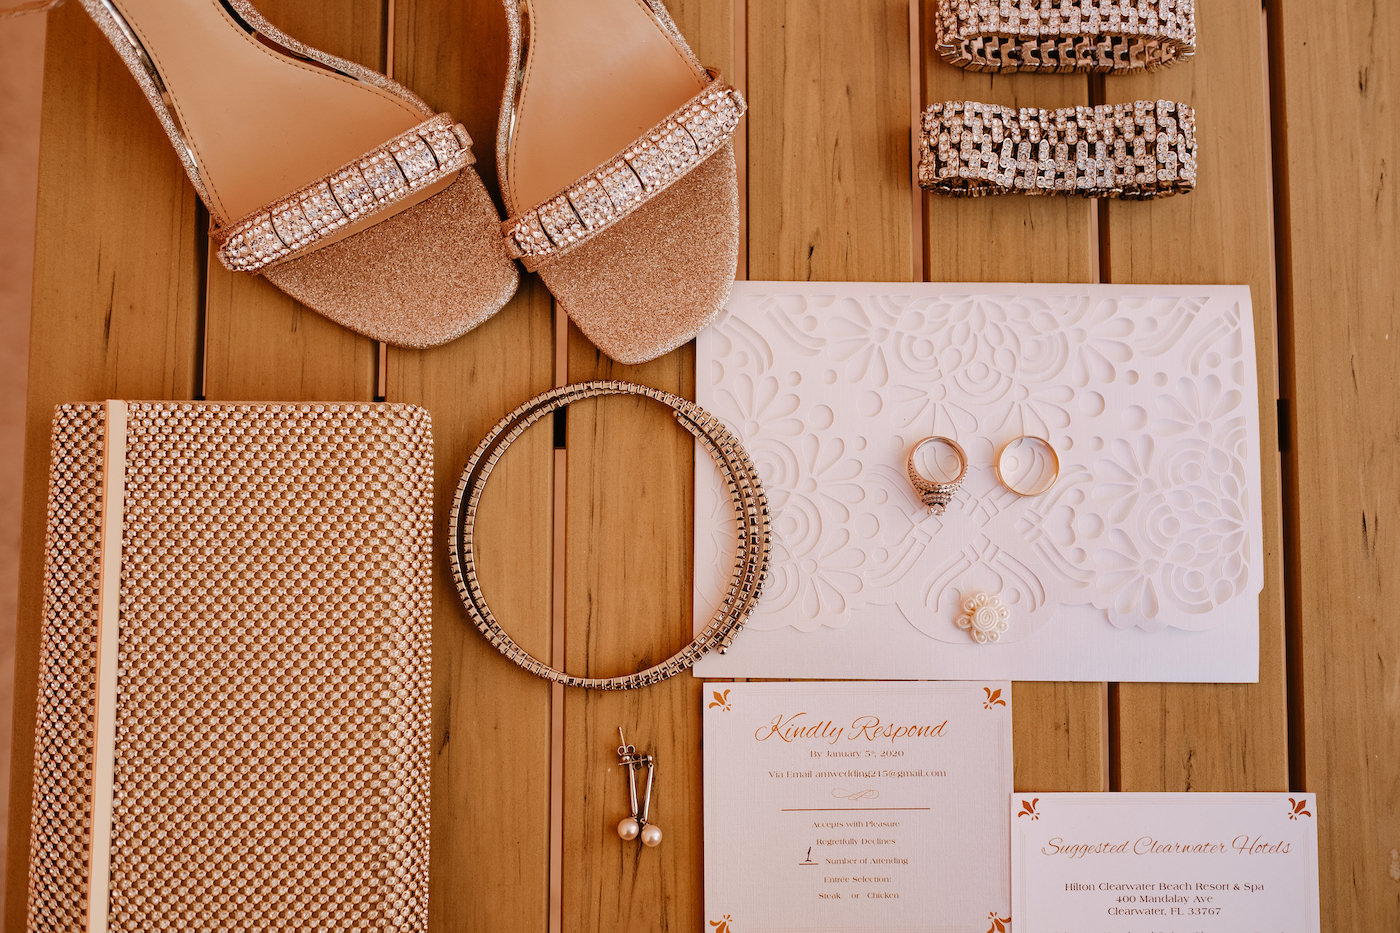 Wedding Invitation Set with Die Cut Lace Design   Wedding Flat Lay Stationery Set with Gold Rhinestone Clutch and Gold Rhinestone Wedding Shoes